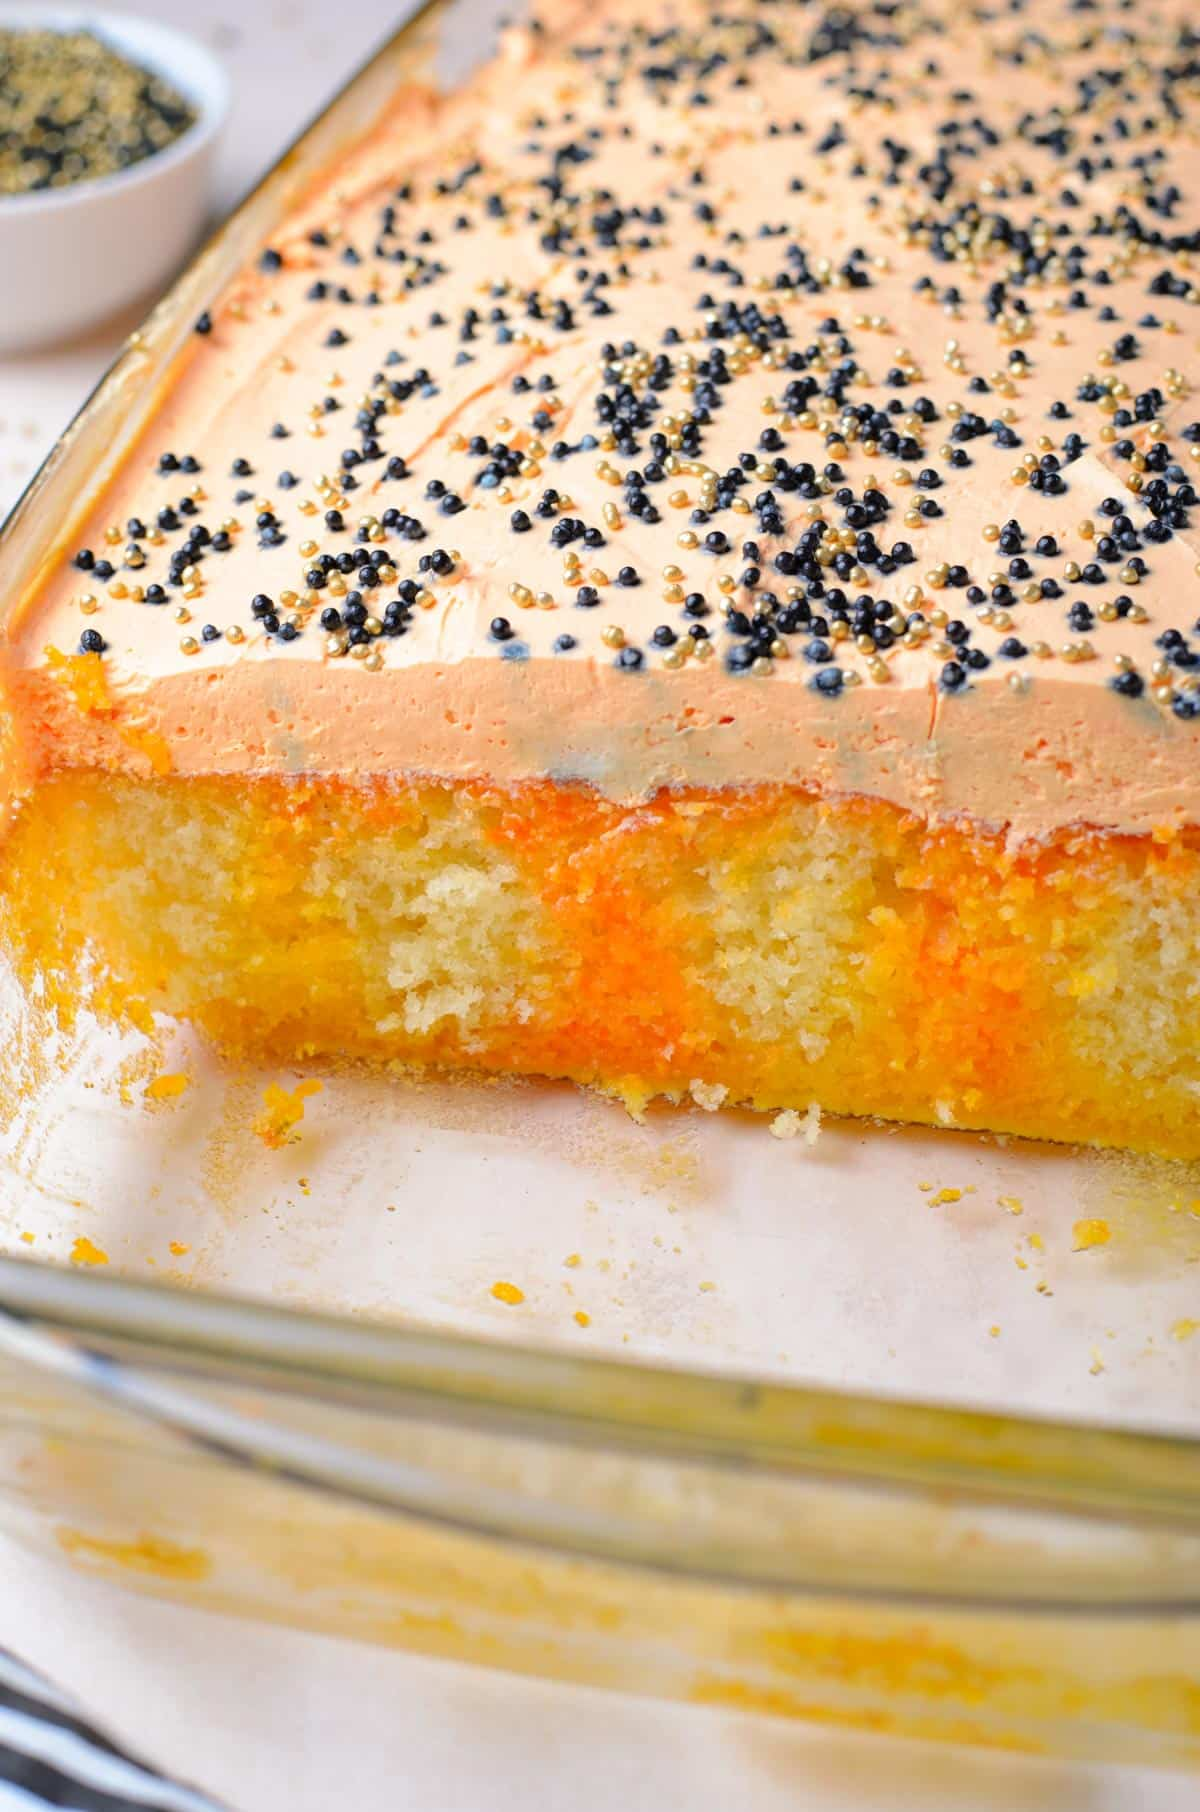 inside of a baked poke cake with layers of orange